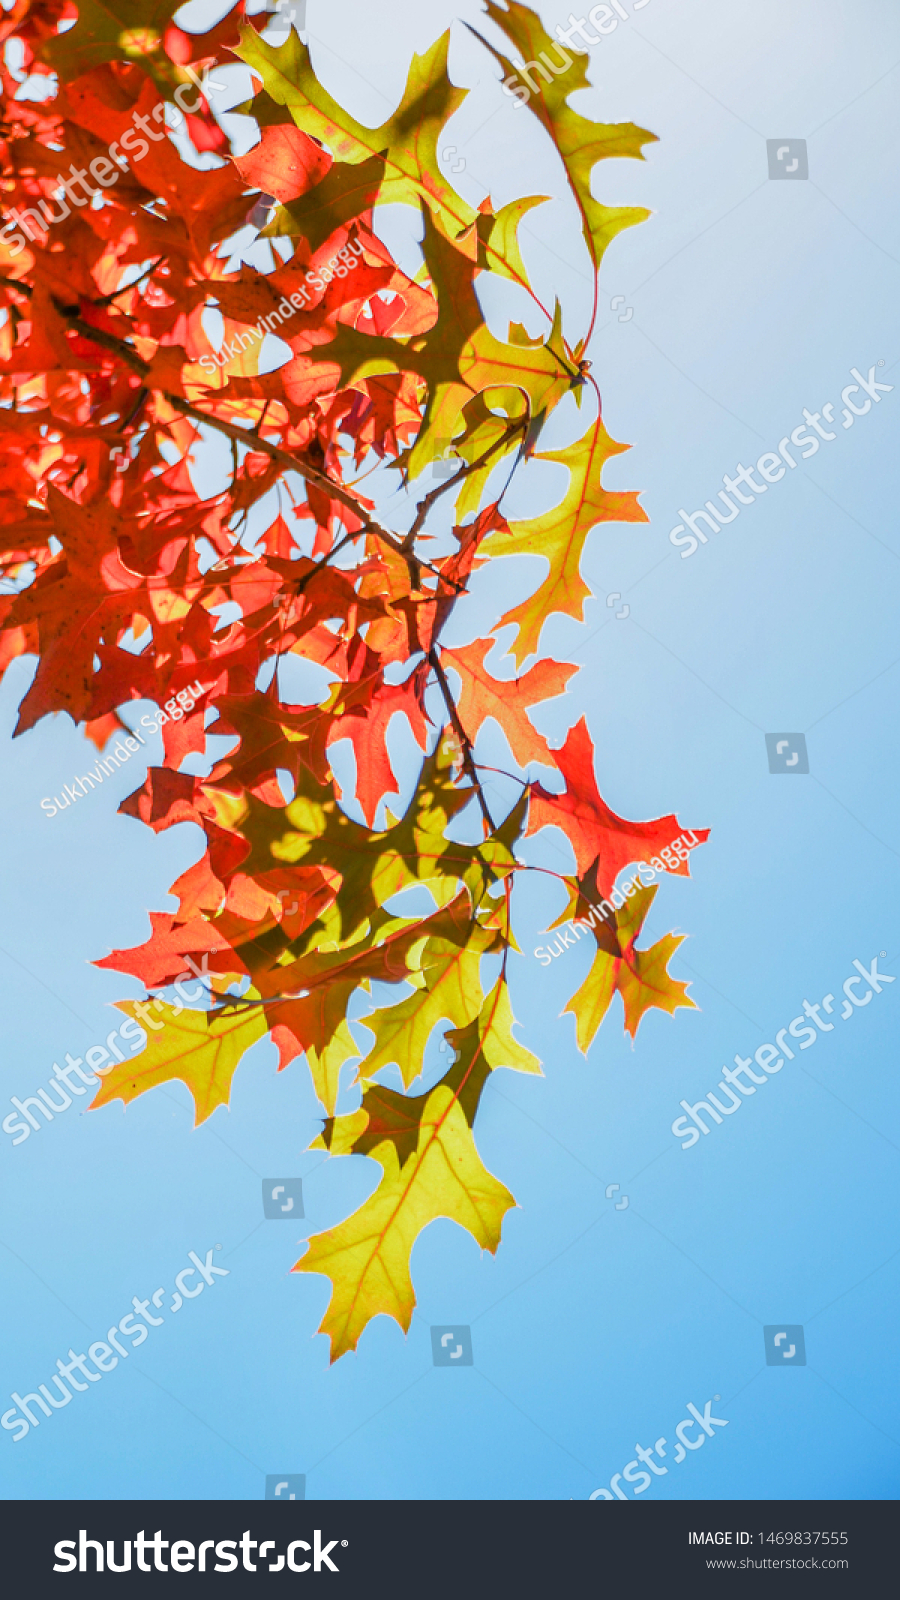 Autumn Colourful Foliage Different Flowers Fall Nature Parks